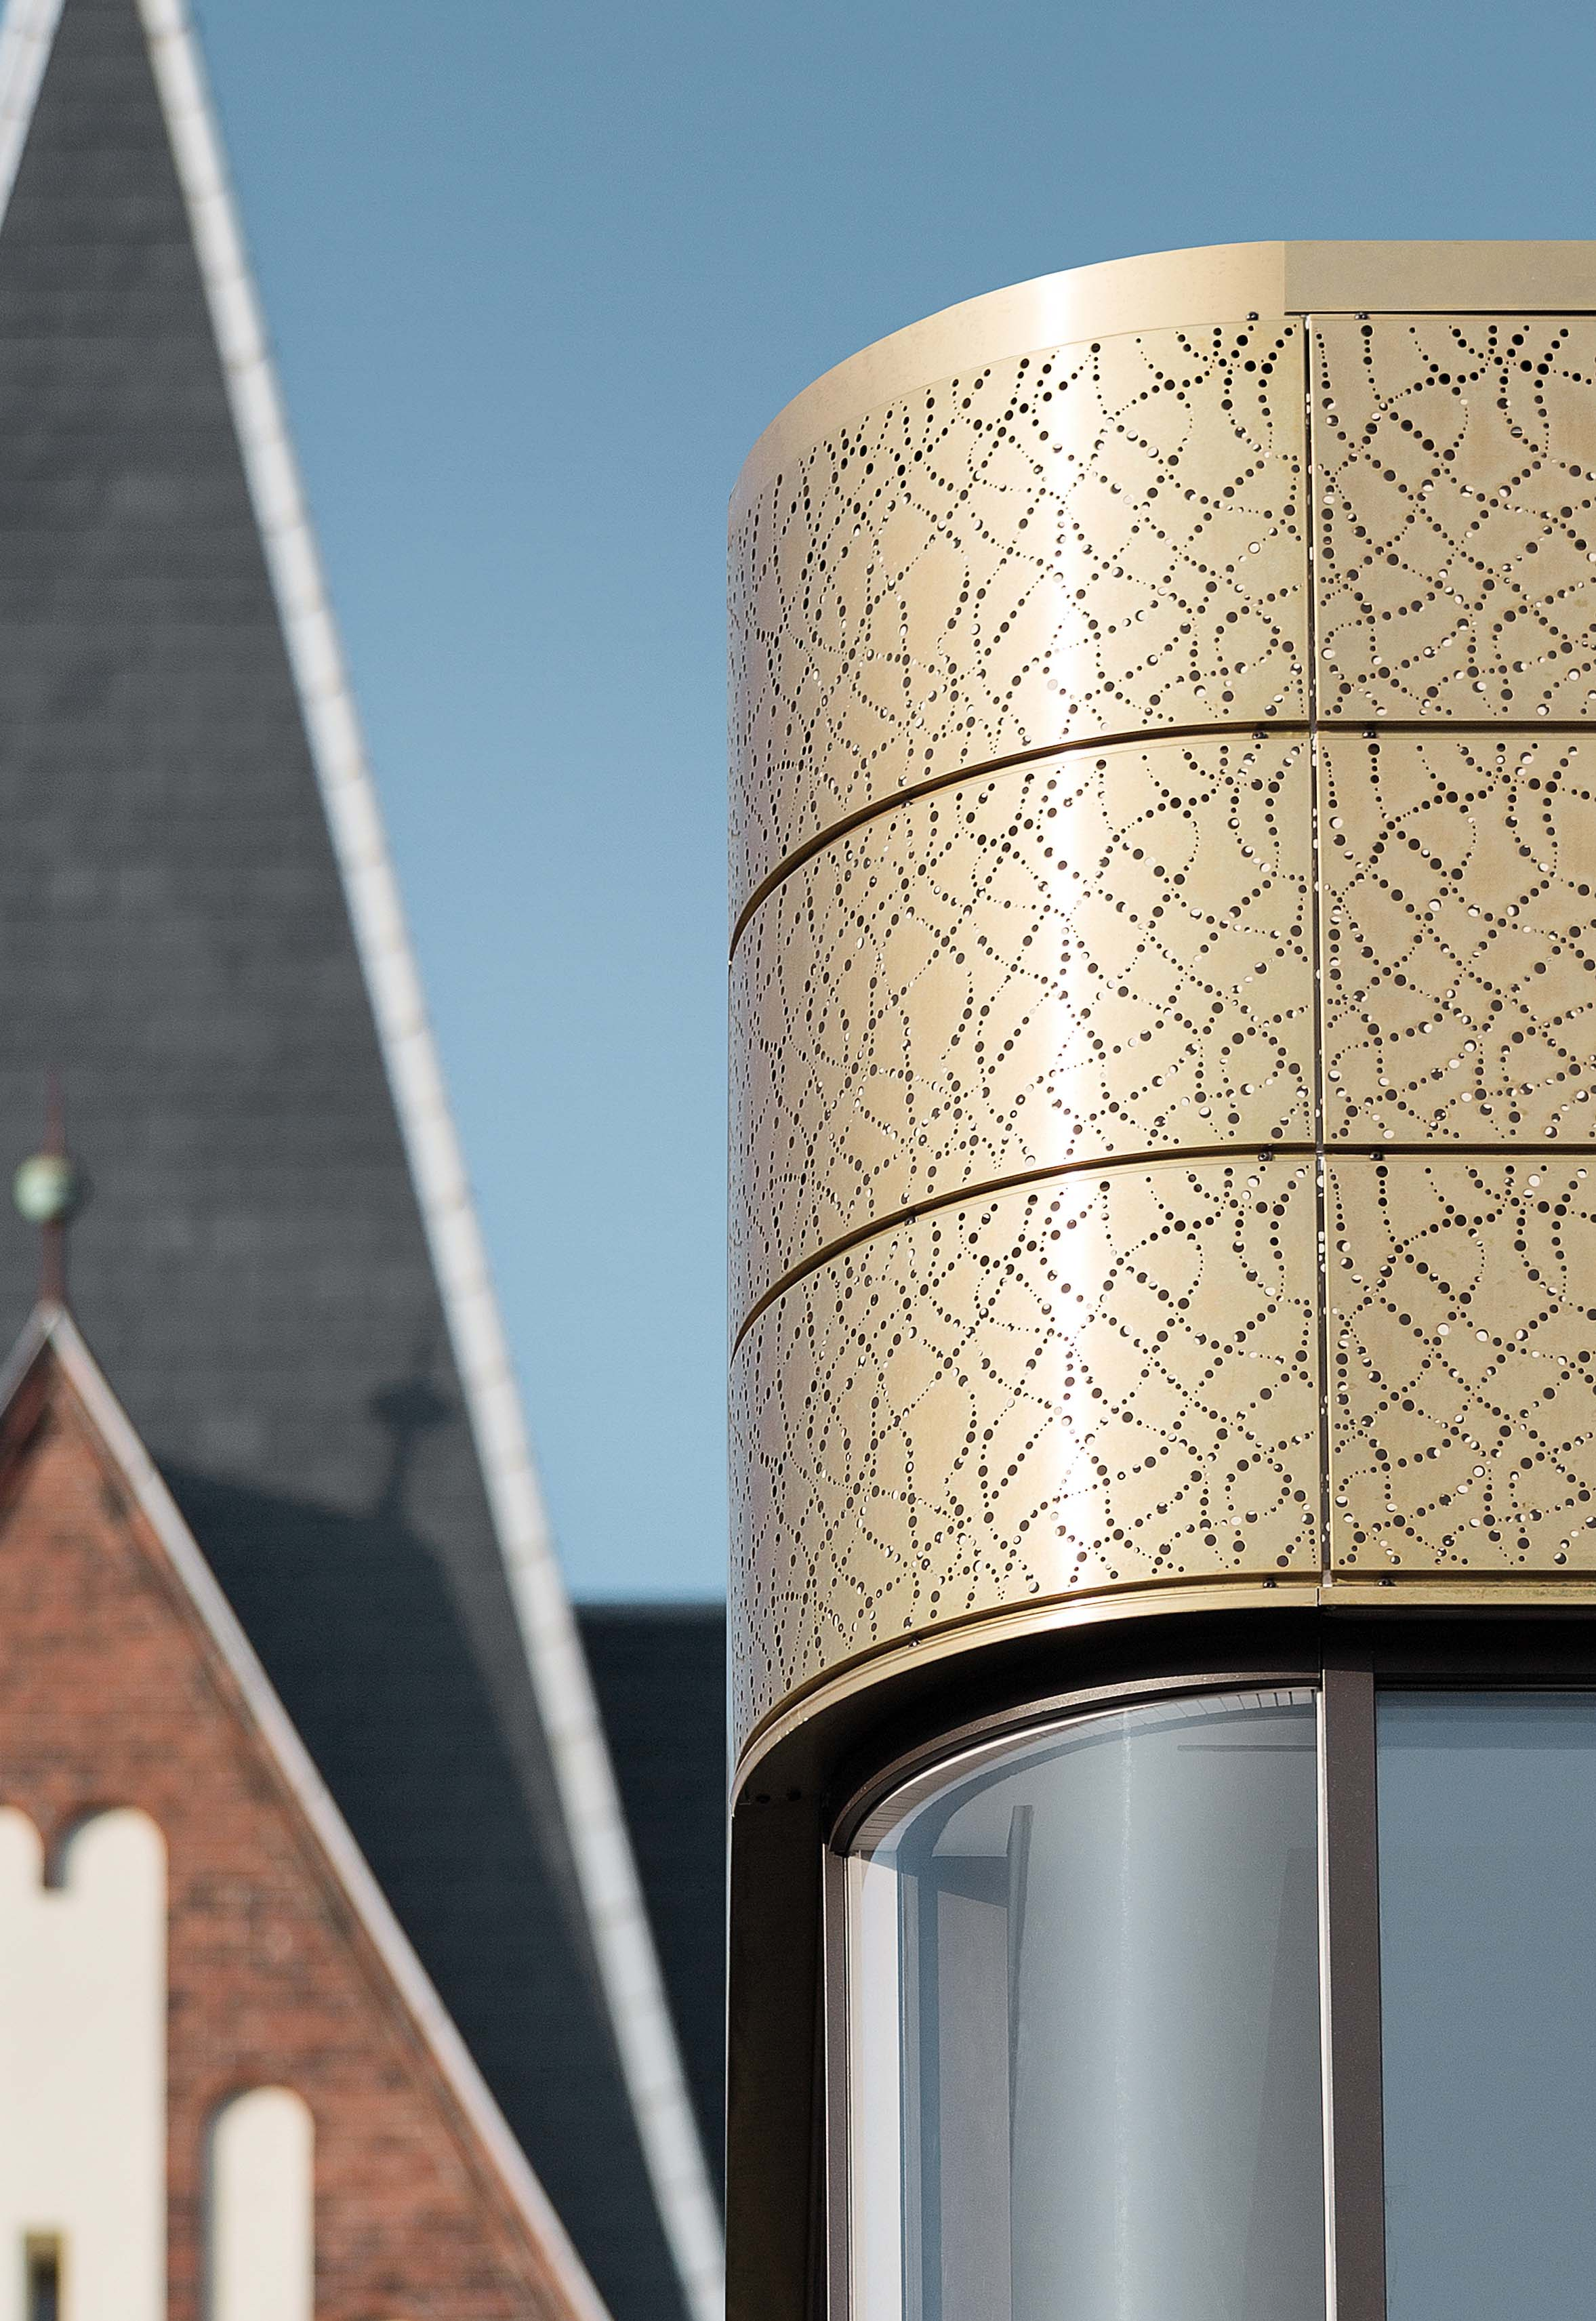 Detail of brass facade in daylight, iconic part of the flagship store of Bang & Olufsen located in Herning